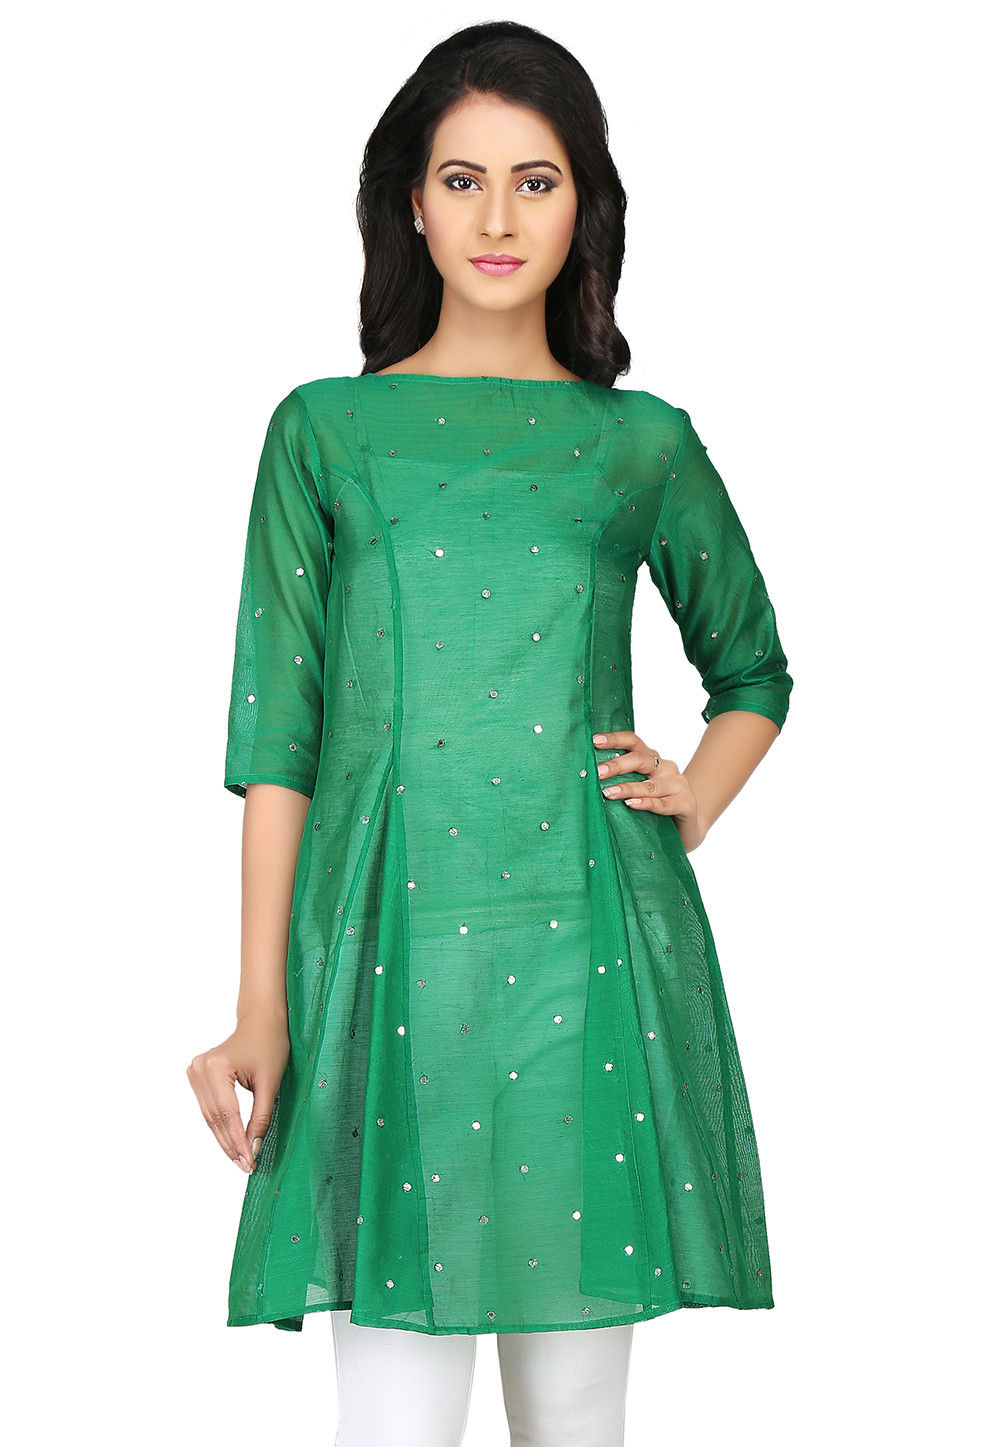 Embroidered Chanderi Silk Tunic in Green